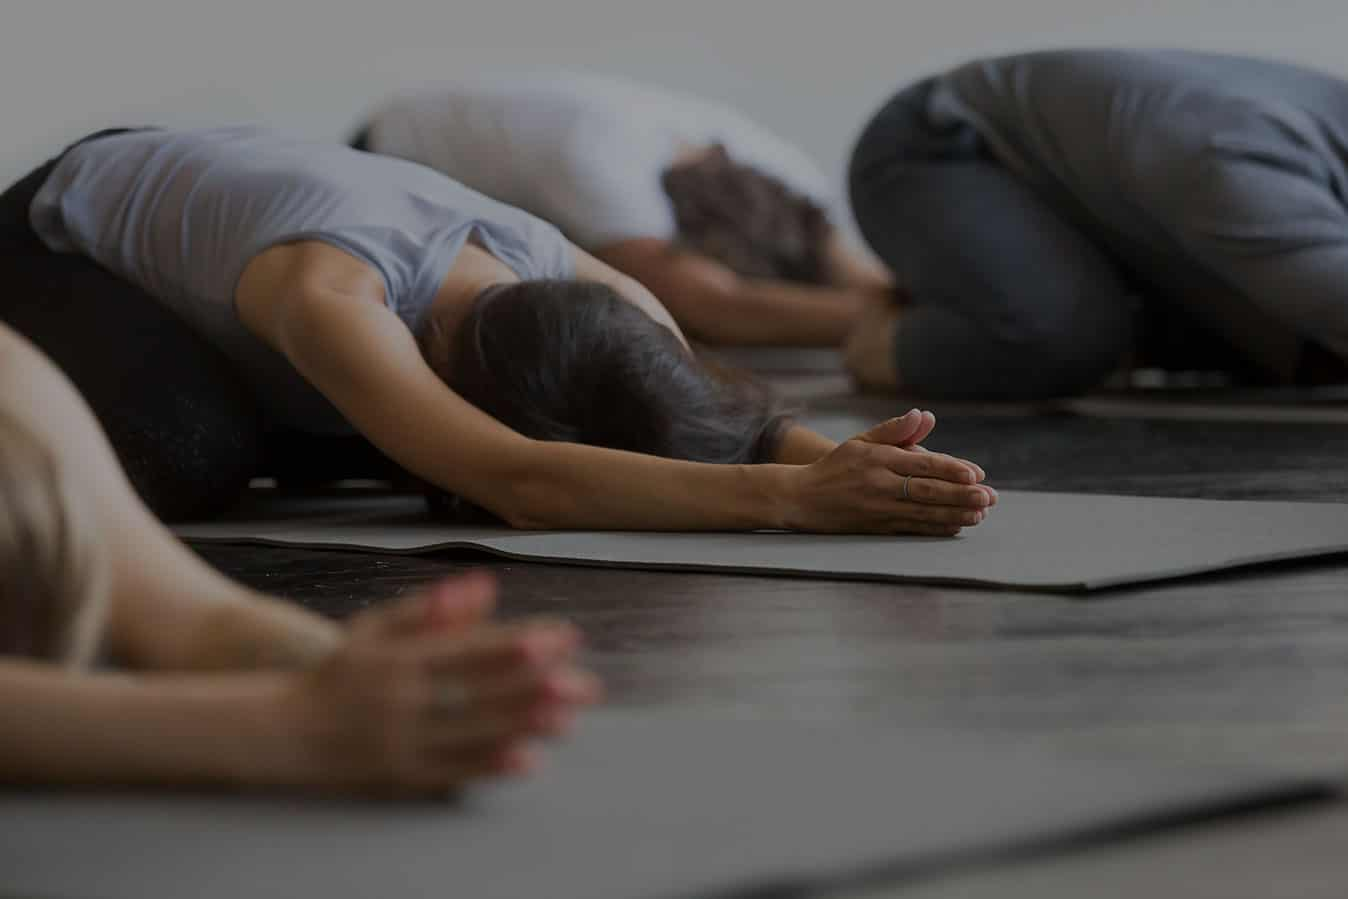 Finding relief through yoga